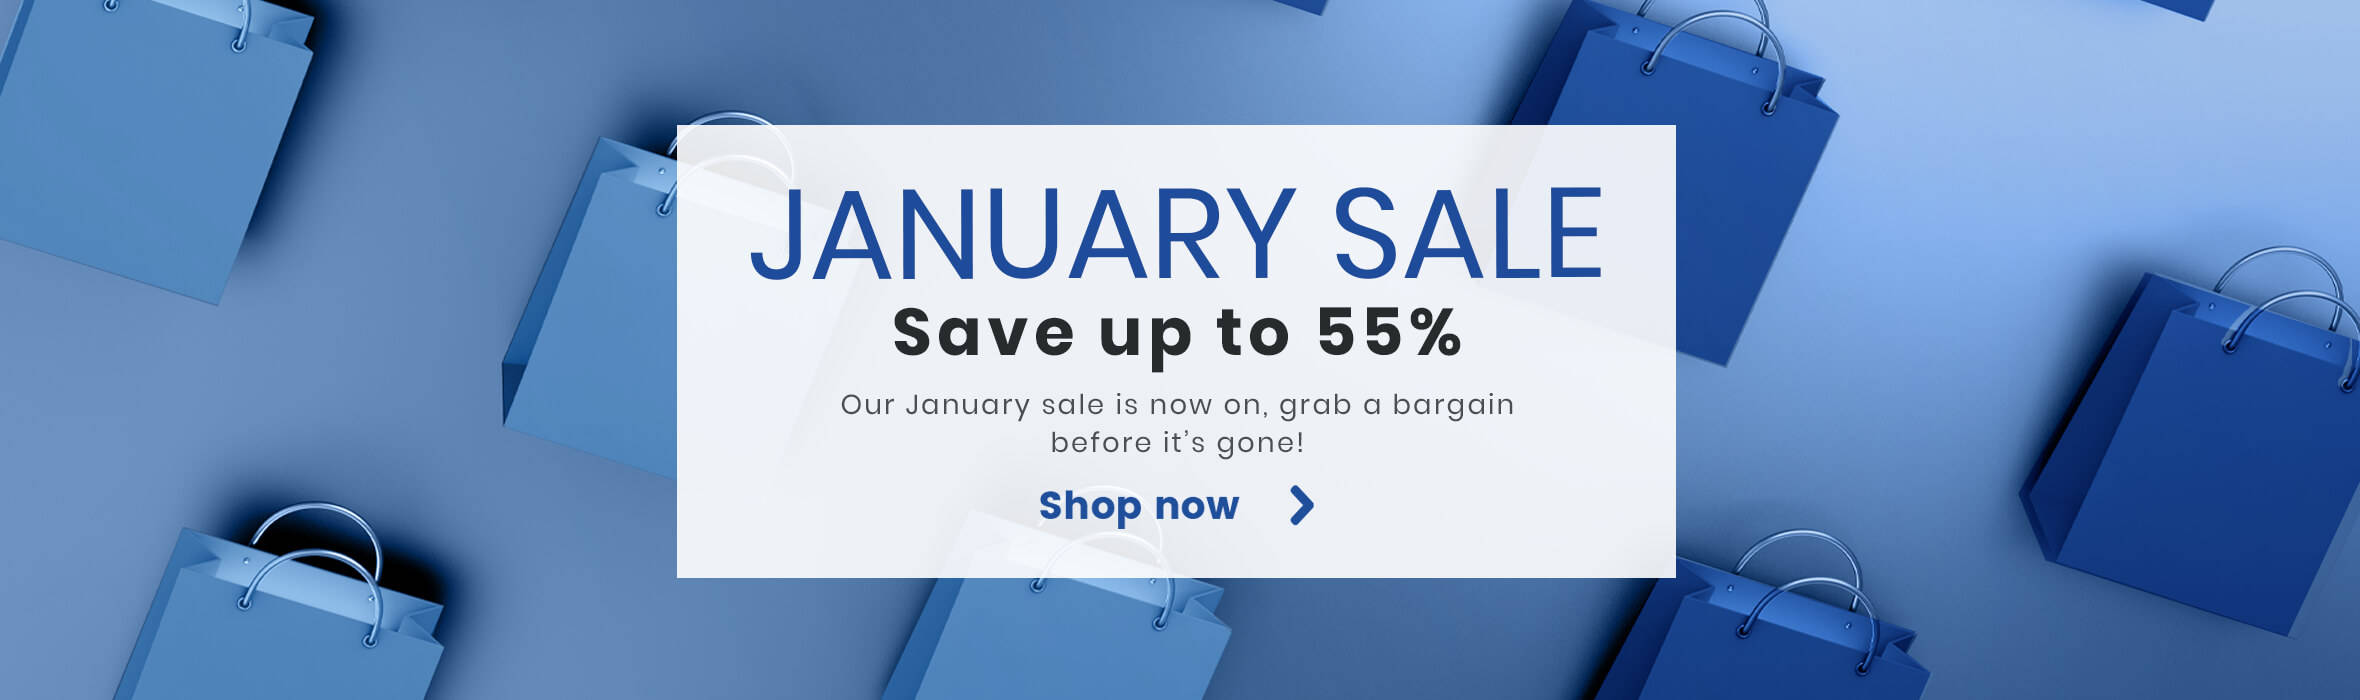 Save up to 55% in our January Sale